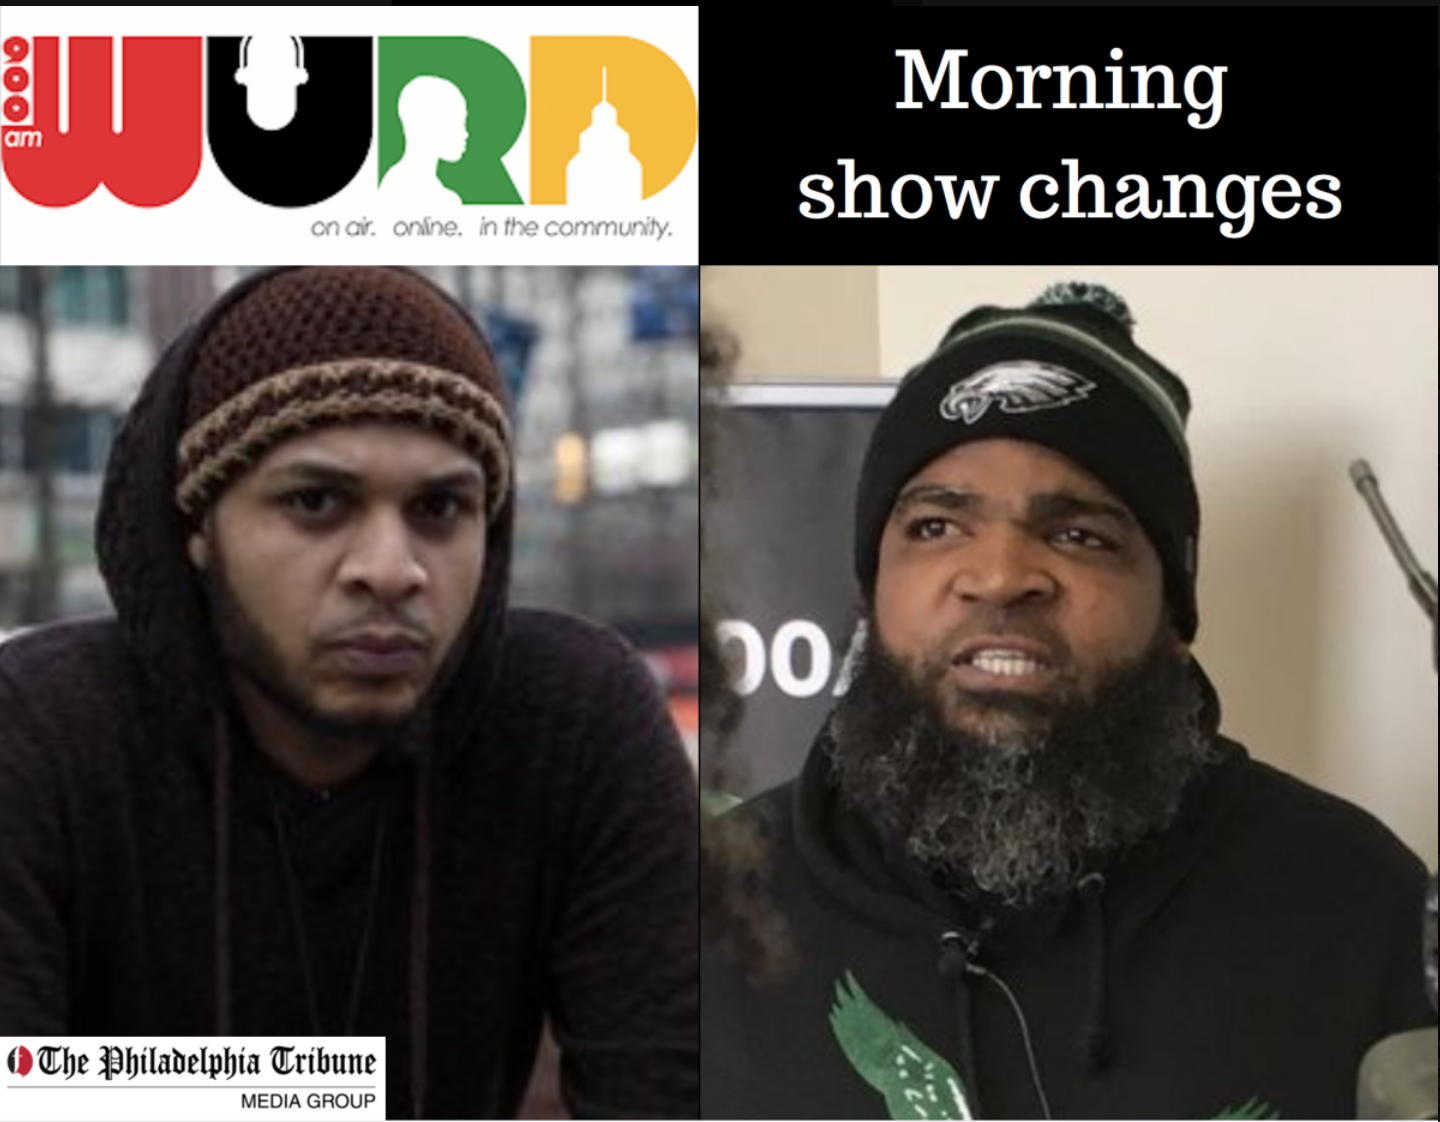 04/25/18 : WURD Radio changes morning show hosts again